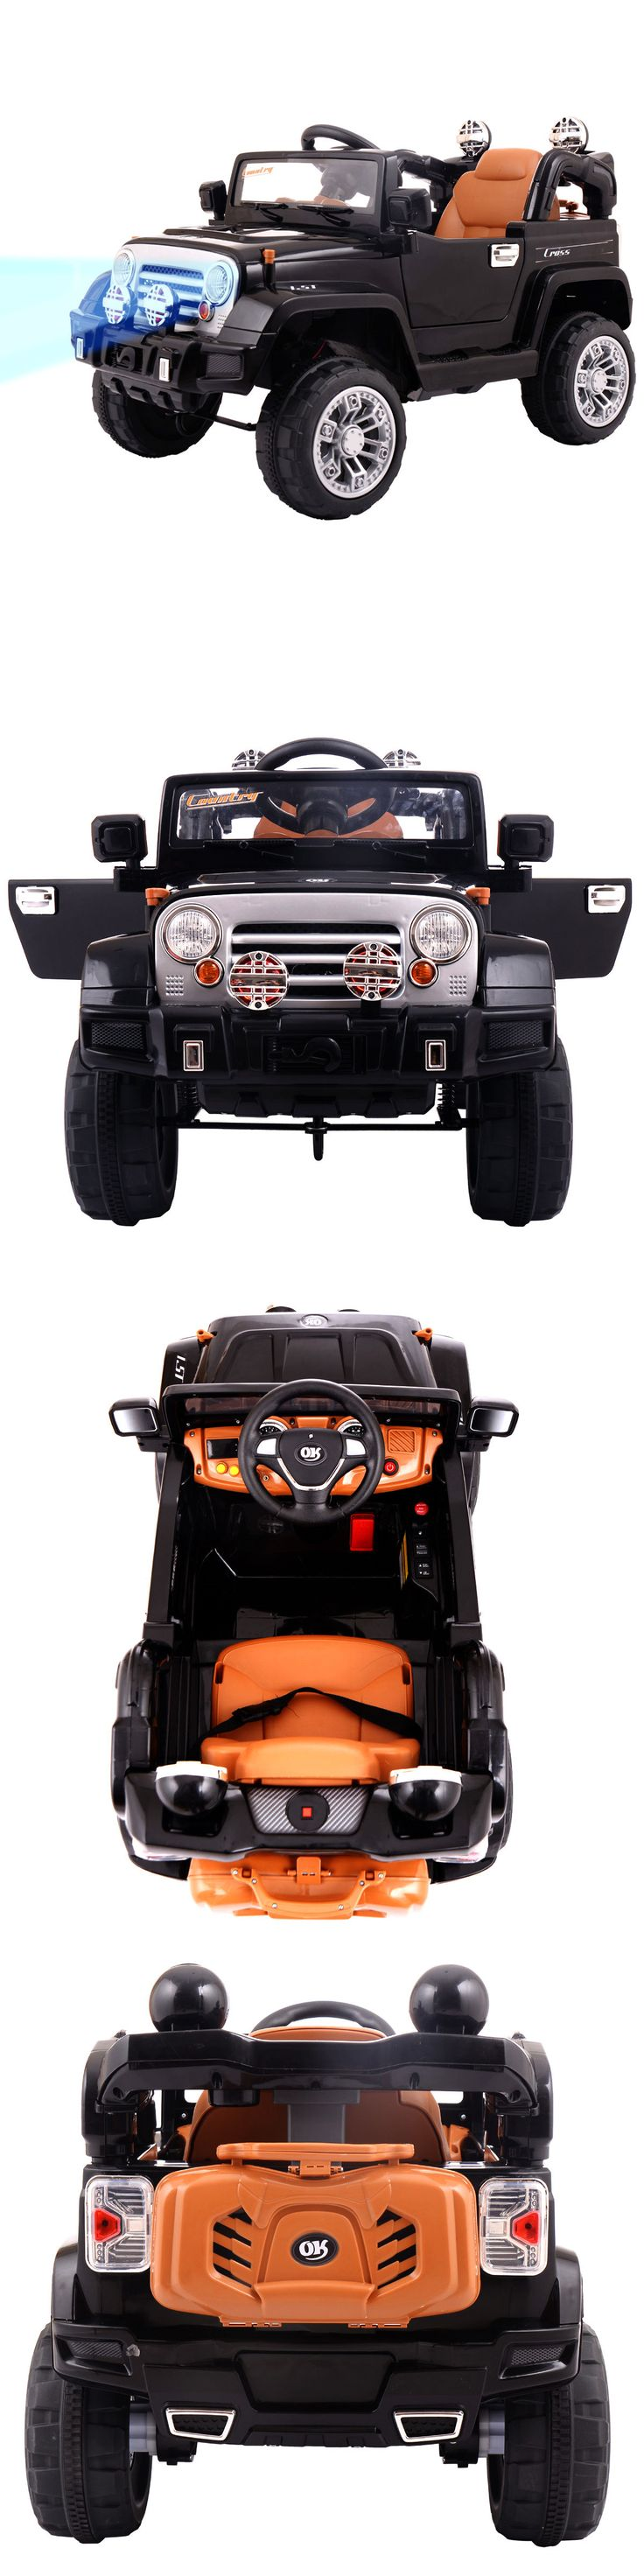 Ride On Toys and Accessories 145944: 12V Mp3 Rc Battery Power Wheels Jeep Car Truck Kids Ride On W Led Lights Black -> BUY IT NOW ONLY: $170.99 on eBay!